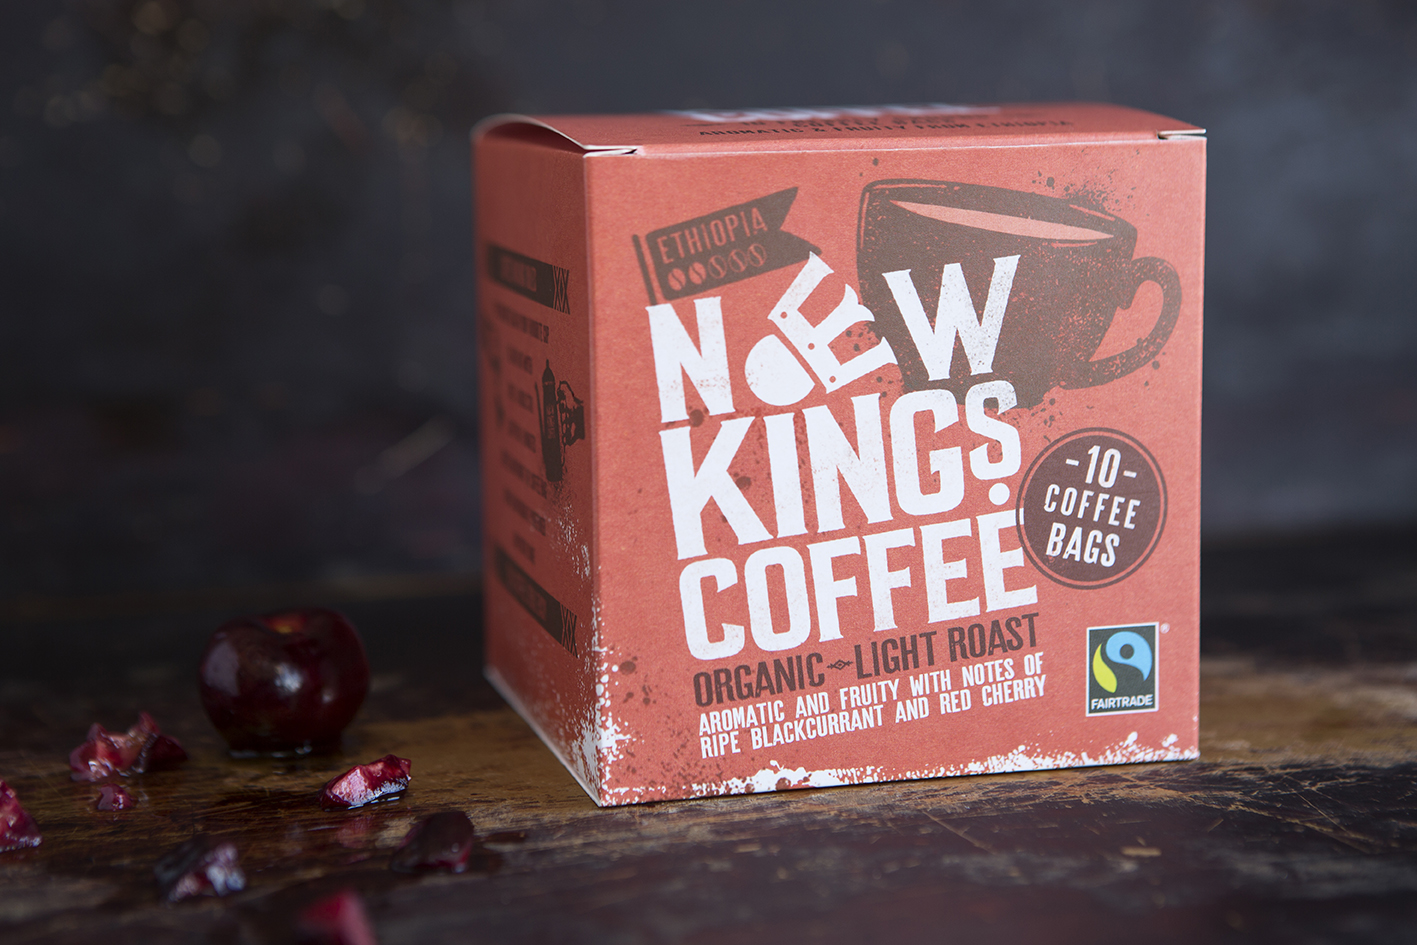 New-Kings-Coffee-Bags-Fairtrade-Organic-Light-Roast-10.jpg